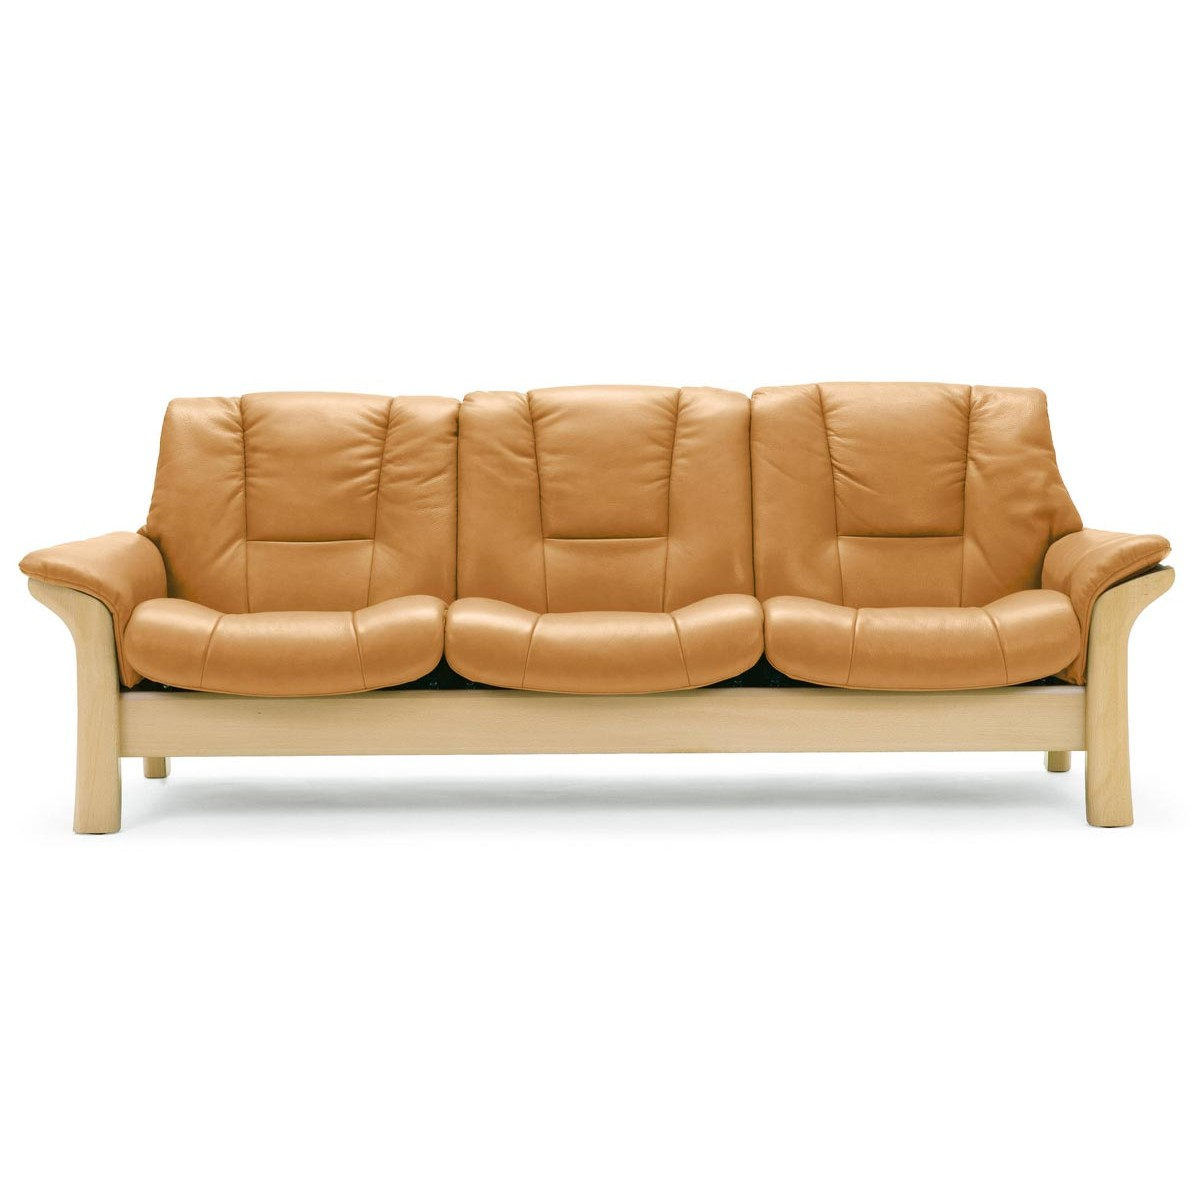 modern low back sofas restoration hardware sofa couch stressless buckingham from 4 095 00 by